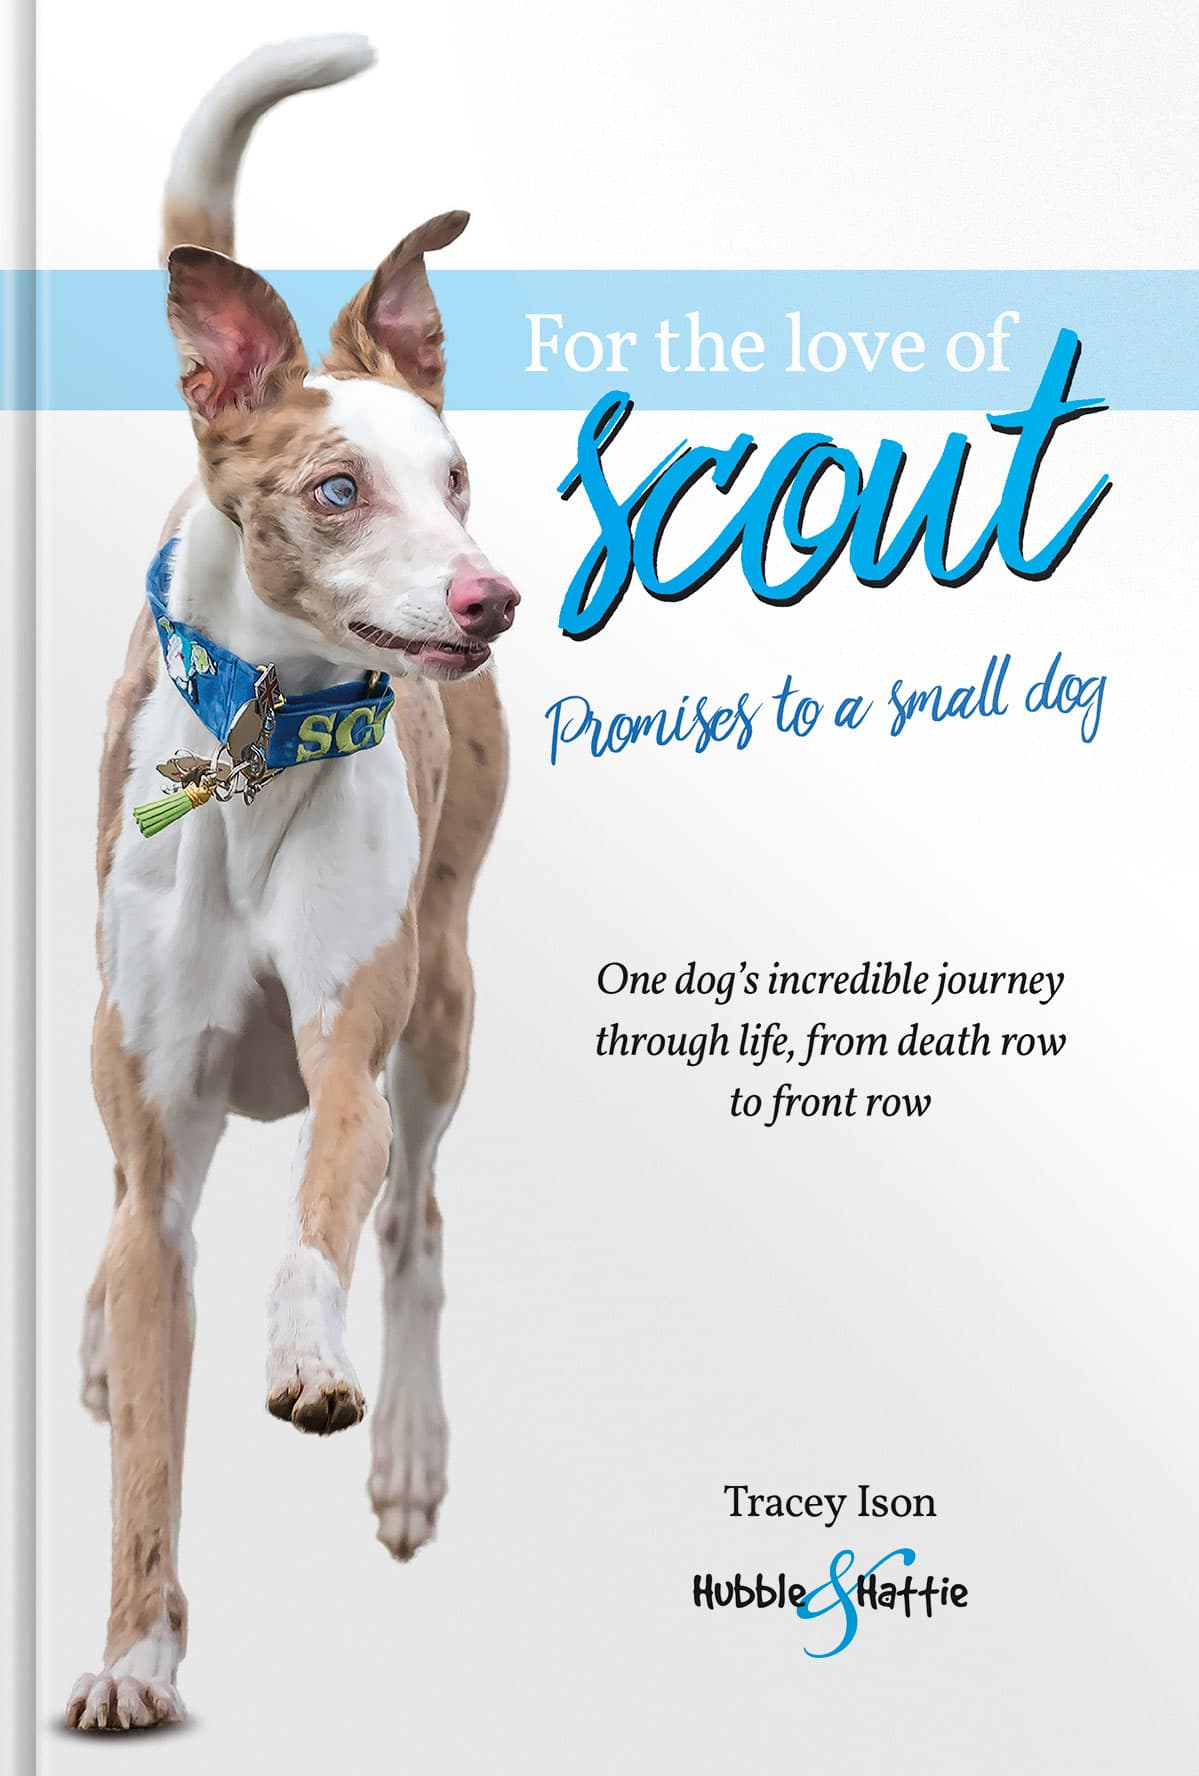 For the love of Scout –Promises to a small dog